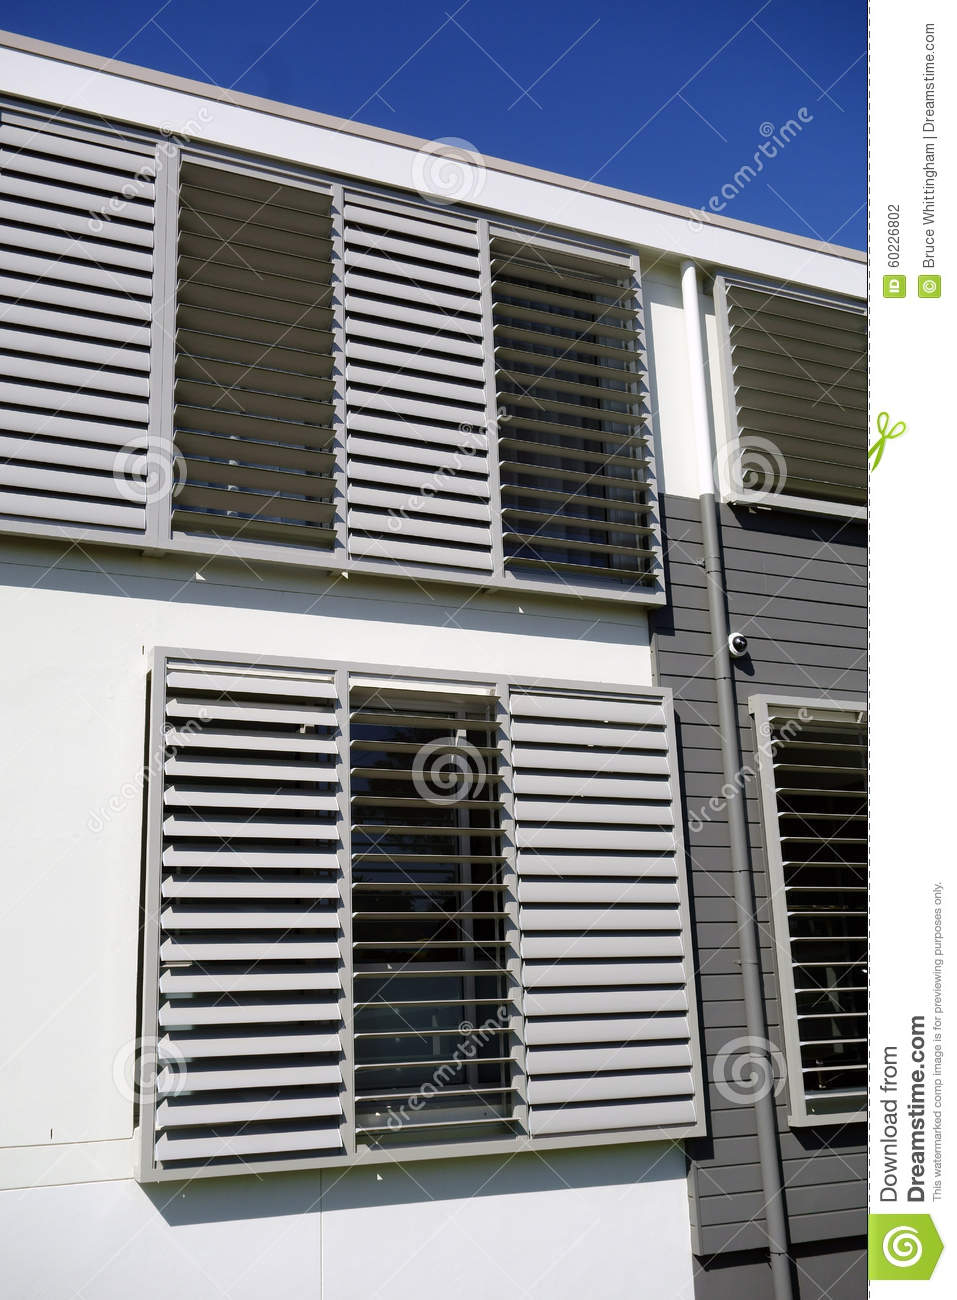 Metal Shutters On Modern Building Stock Photo Image 60226802